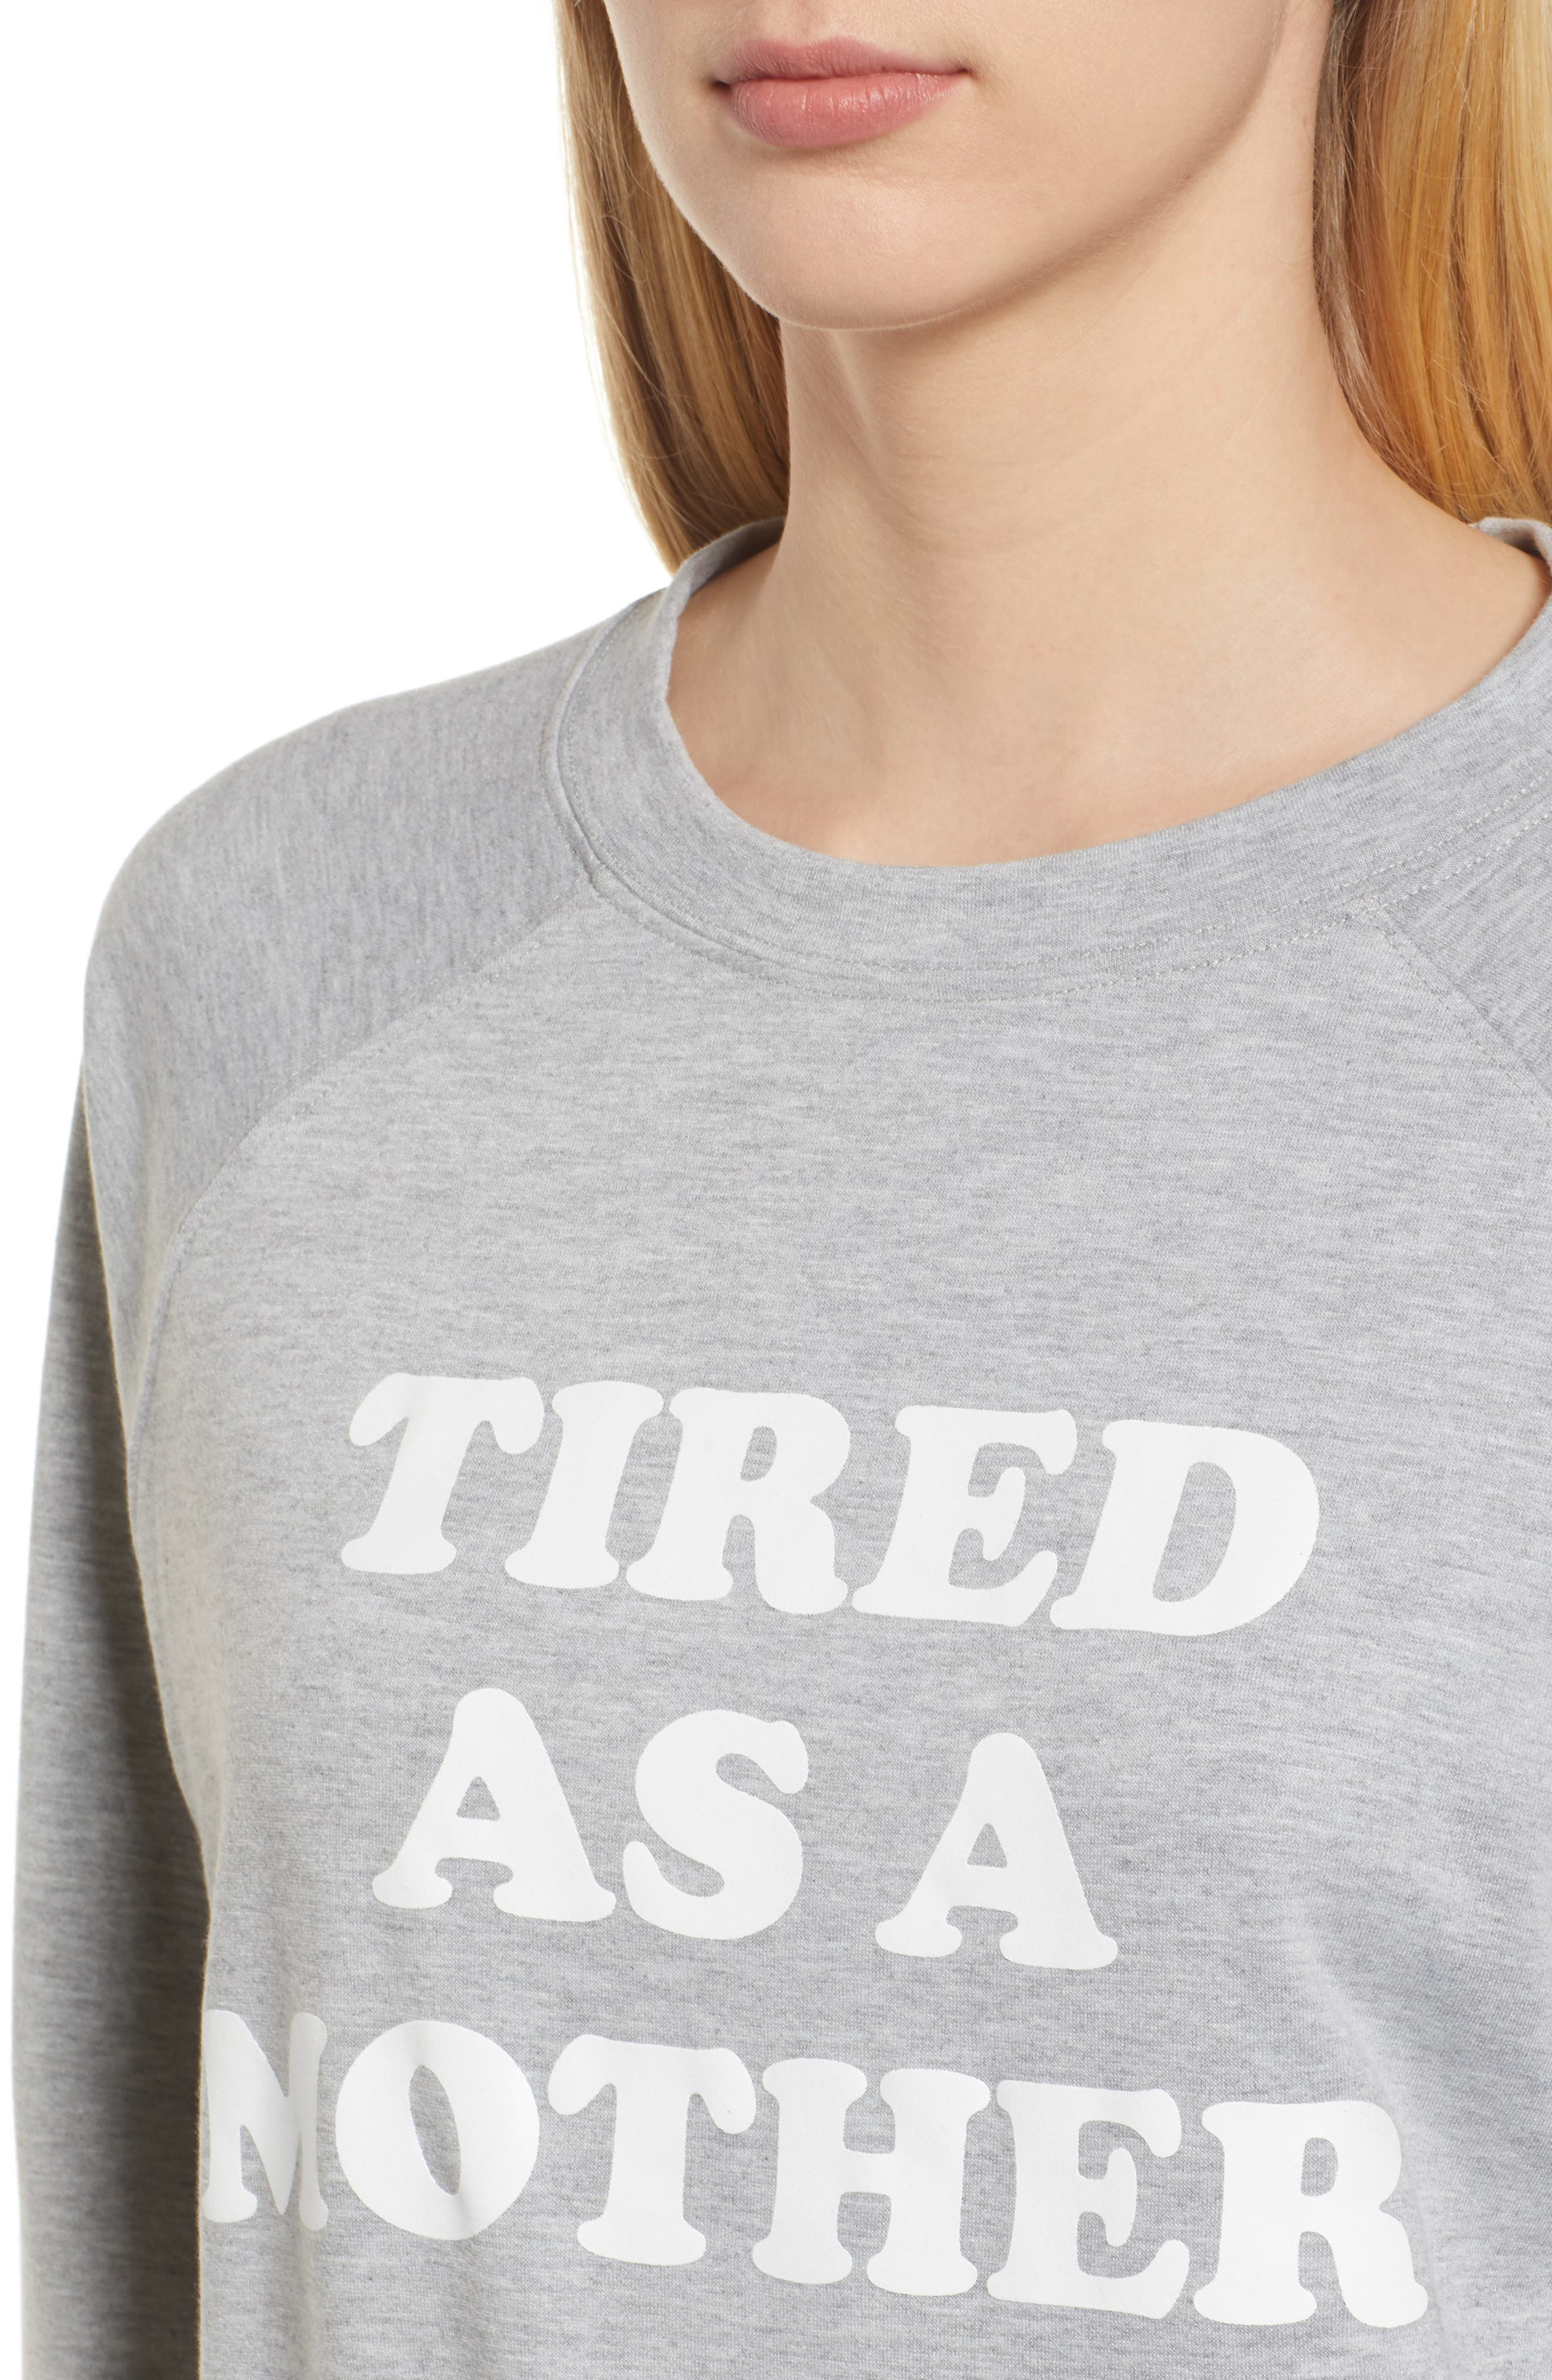 Off-Duty Tired as a Mother Sweatshirt,                             Alternate thumbnail 4, color,                             Grey Heather